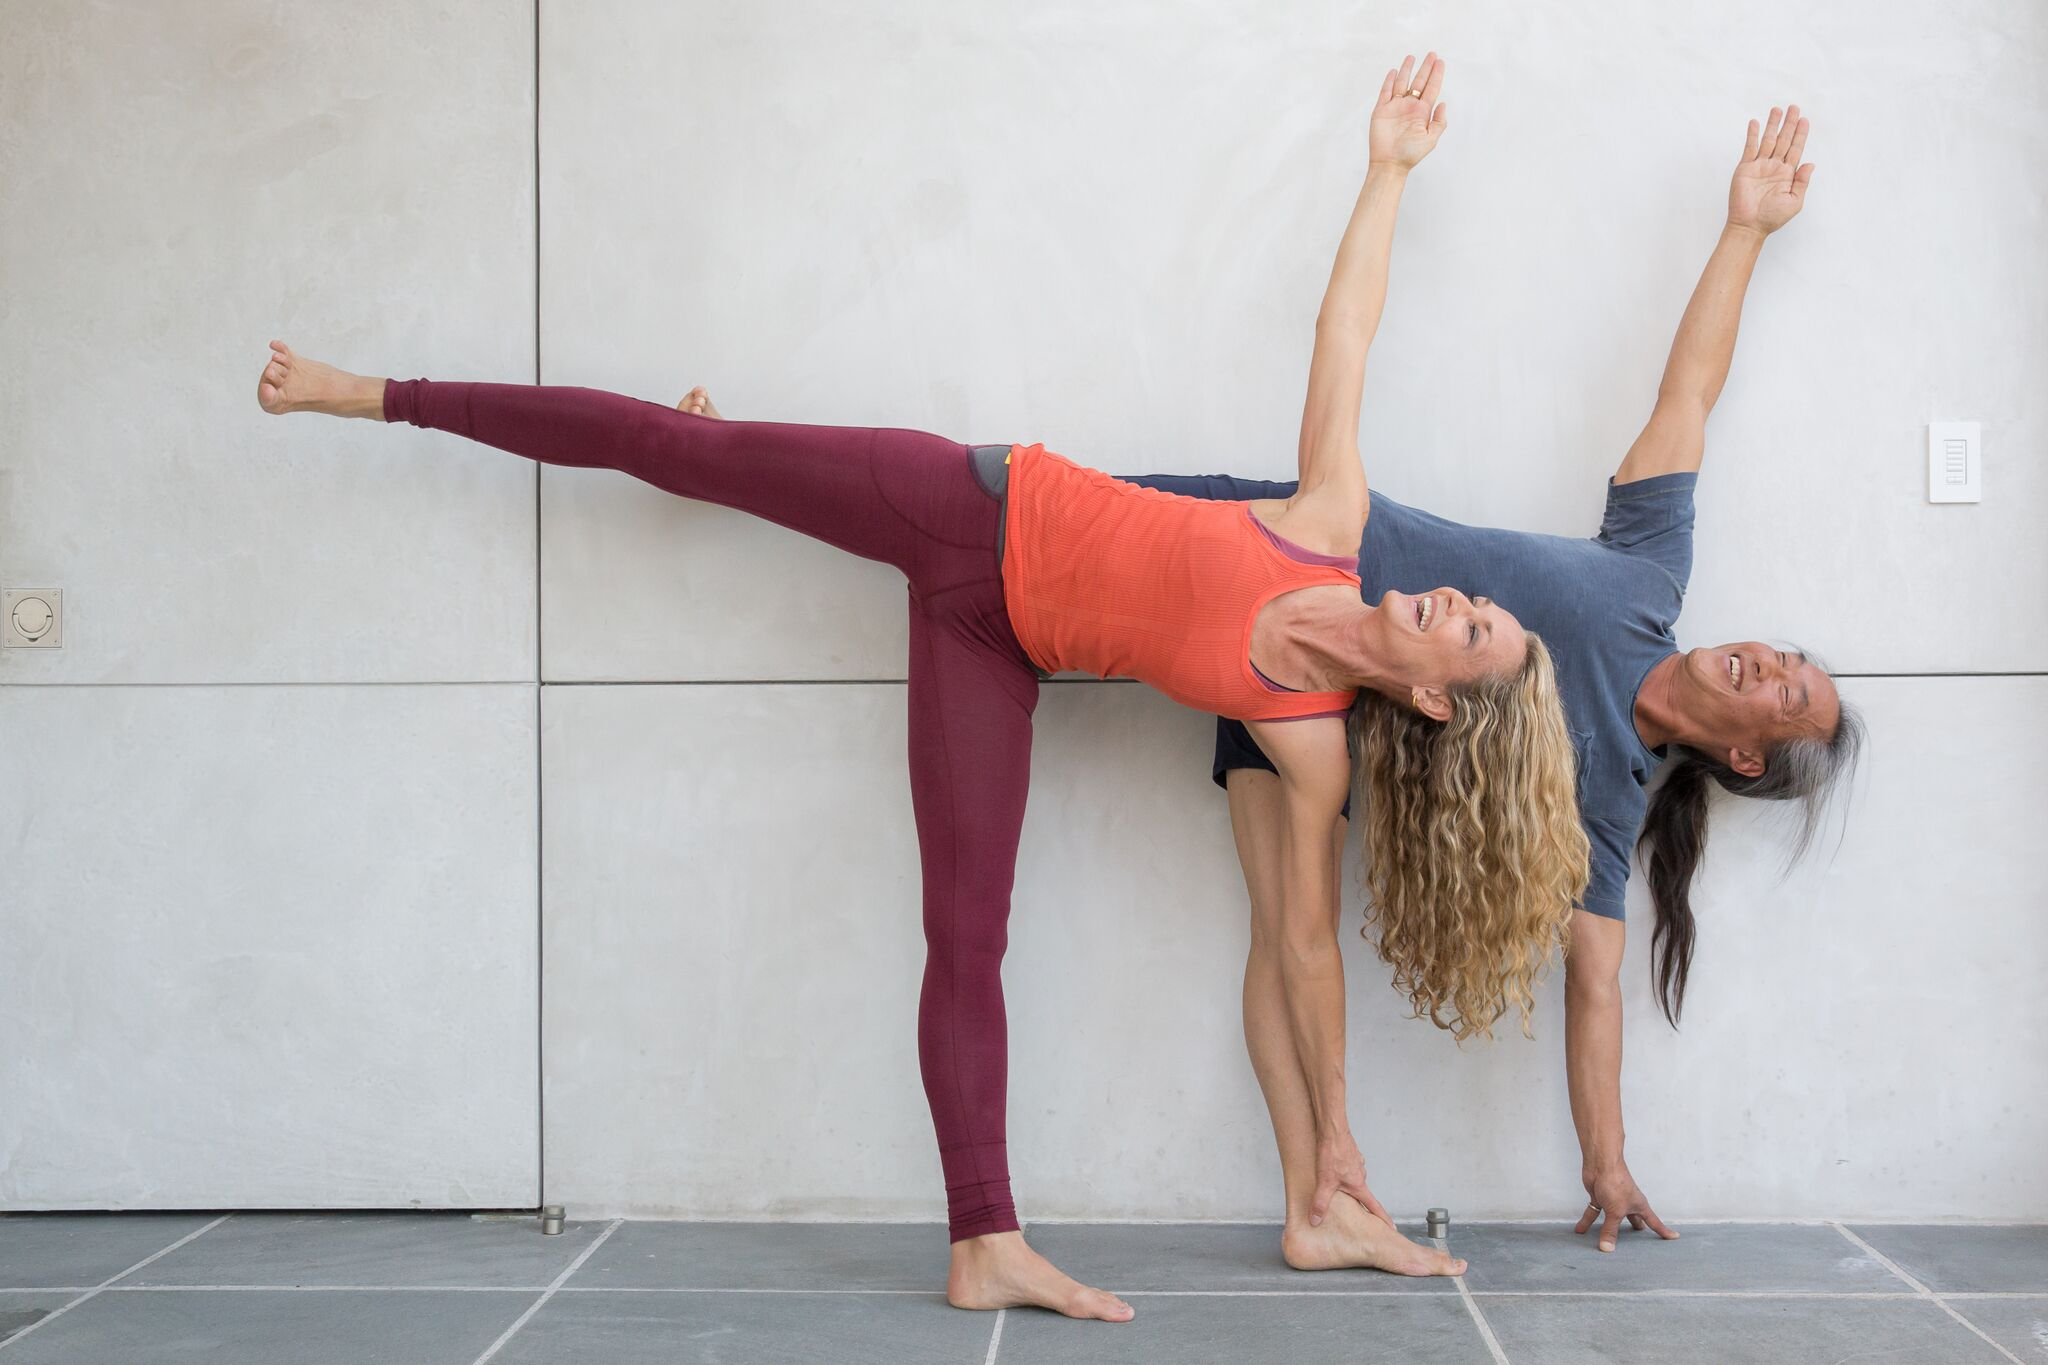 Colleen and Rodney teach The Full Scope of Yoga at Omega in Rhinebeck, NY -